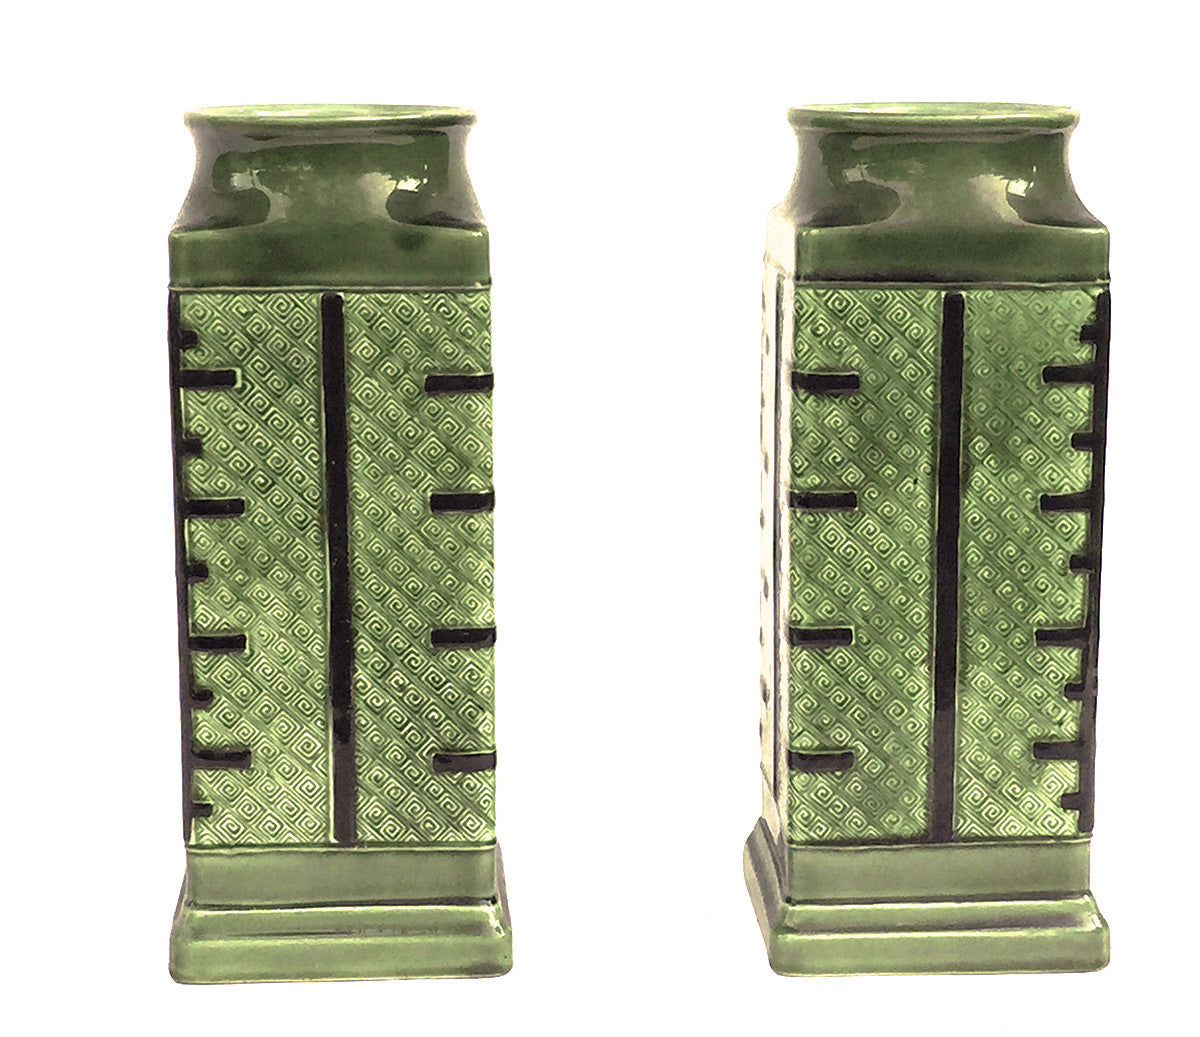 SOLD French (Choisy-le-Roi) Pair of Japonisme Faience Vases, circa 1885